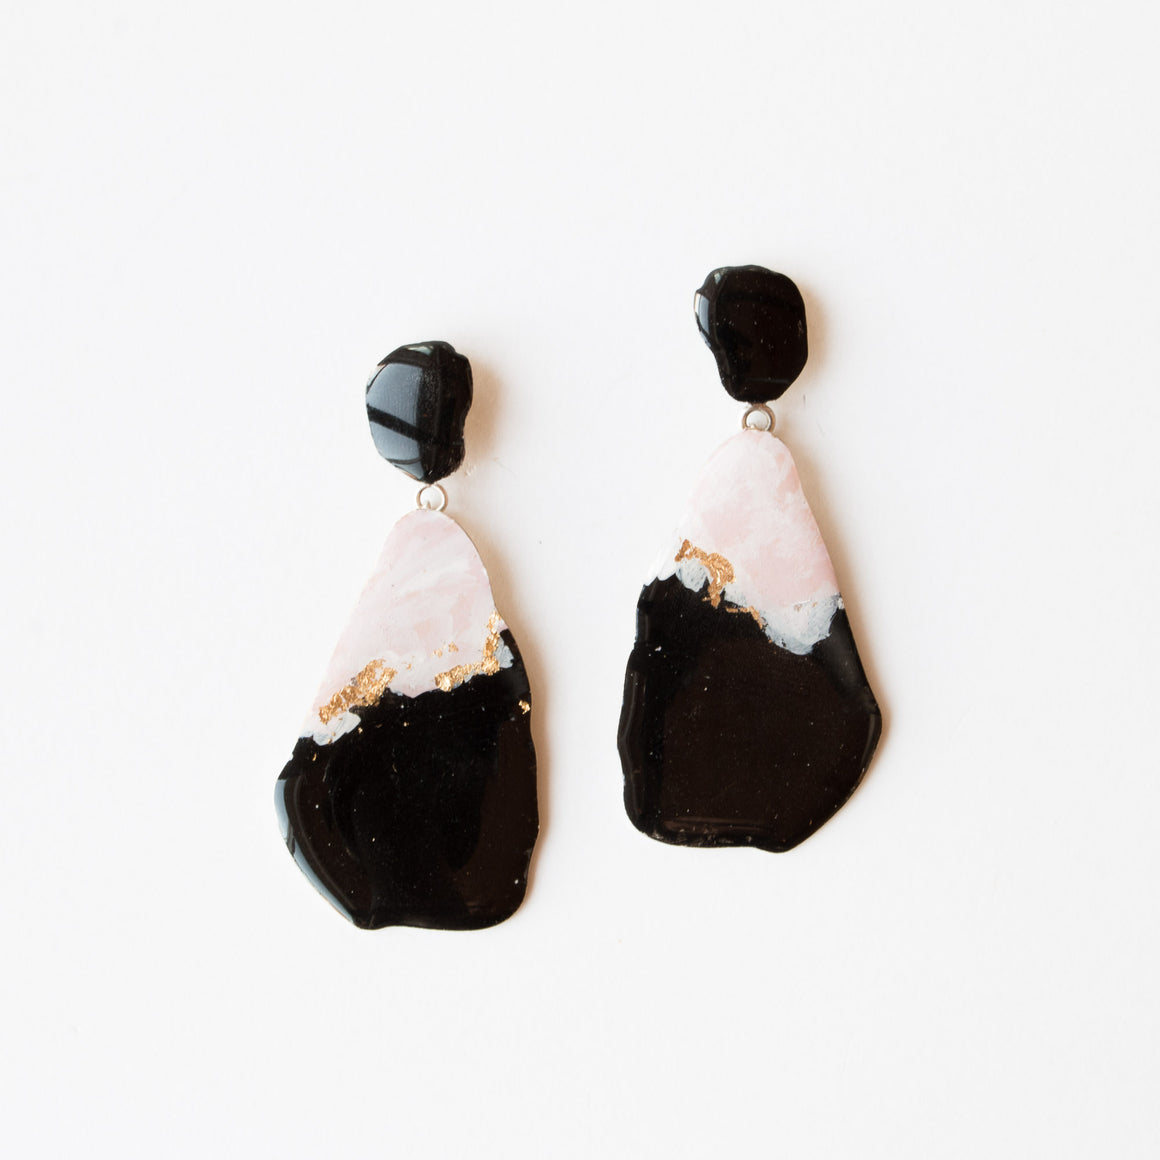 521 - Large Pink, Black & Gold Dangle Earrings